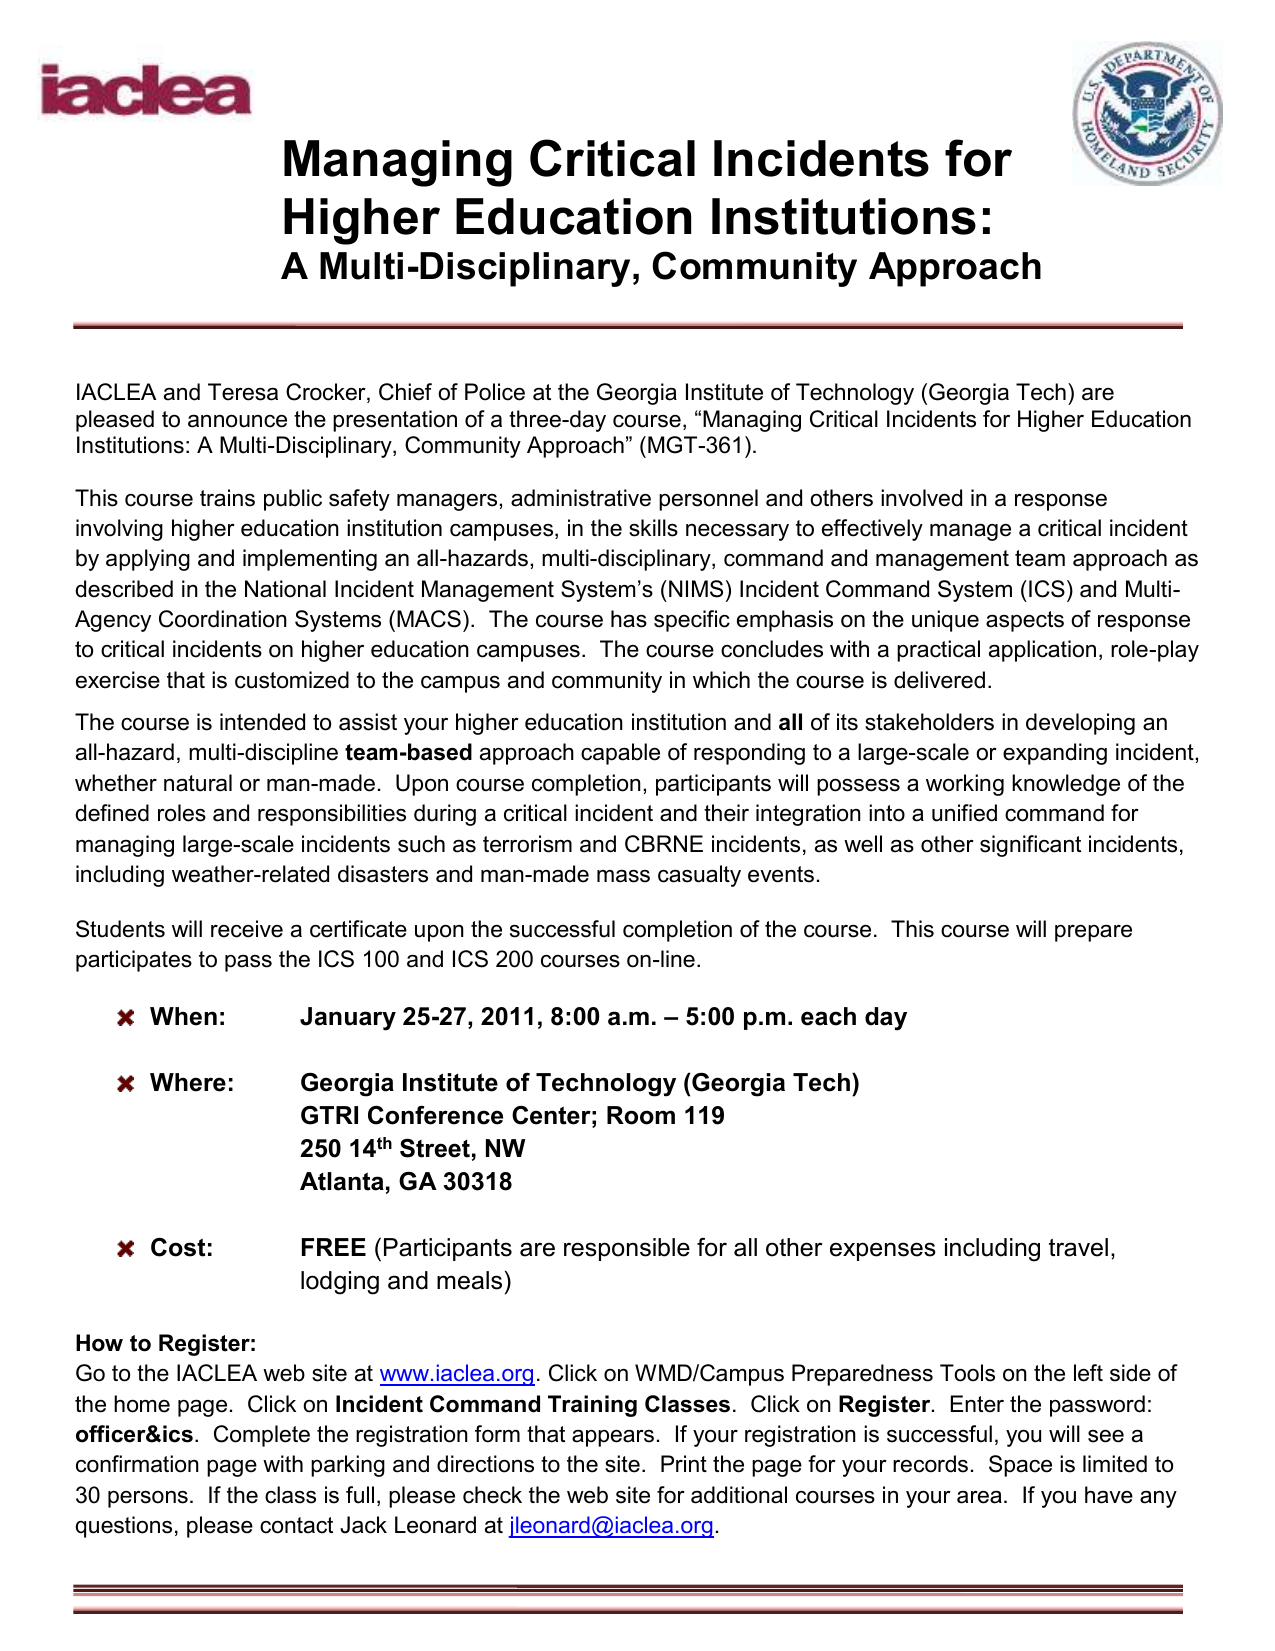 Managing Critical Incidents for Higher Education